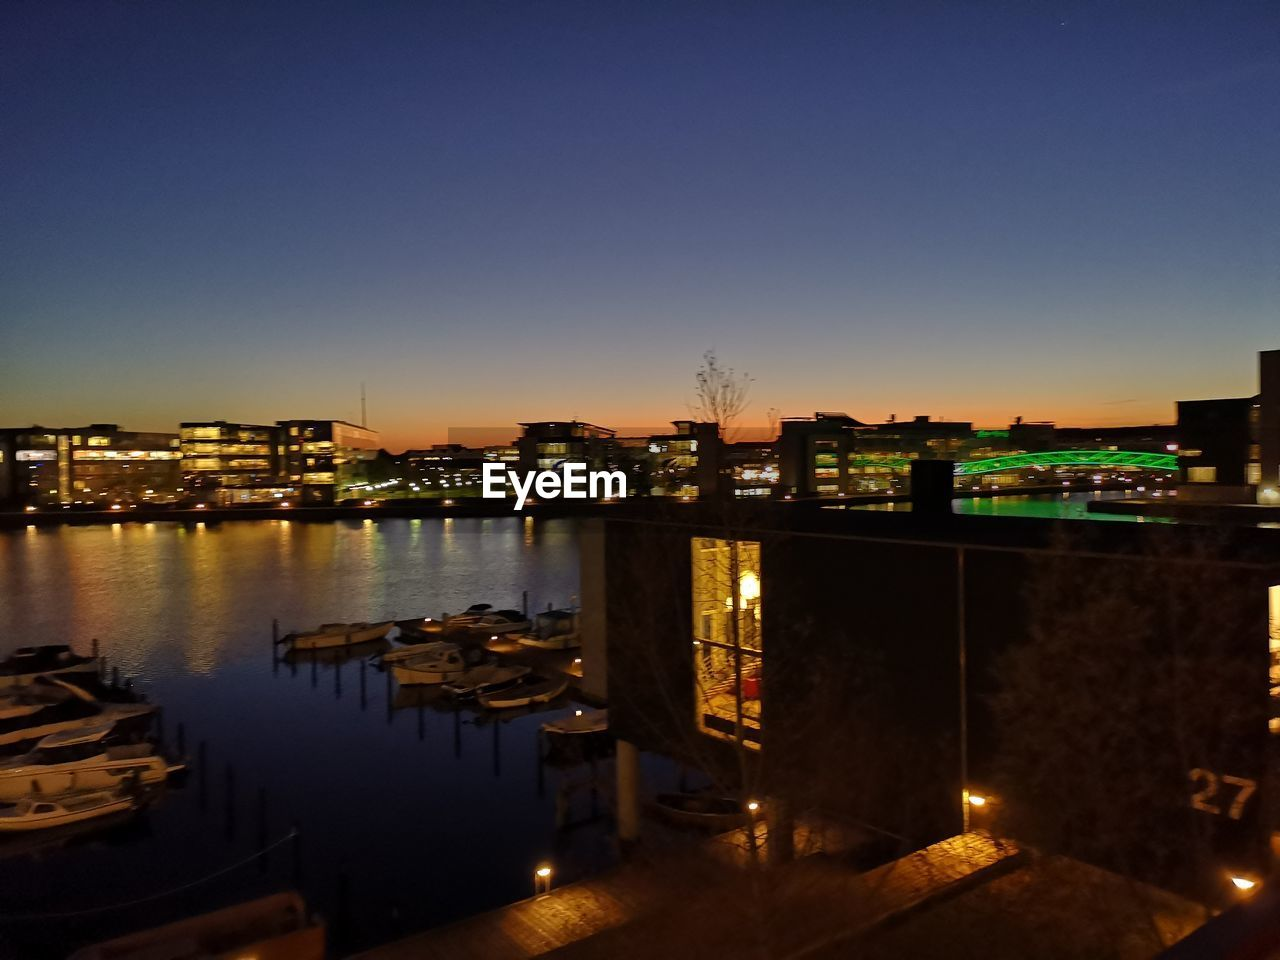 ILLUMINATED BUILDINGS BY RIVER AGAINST CLEAR SKY AT DUSK